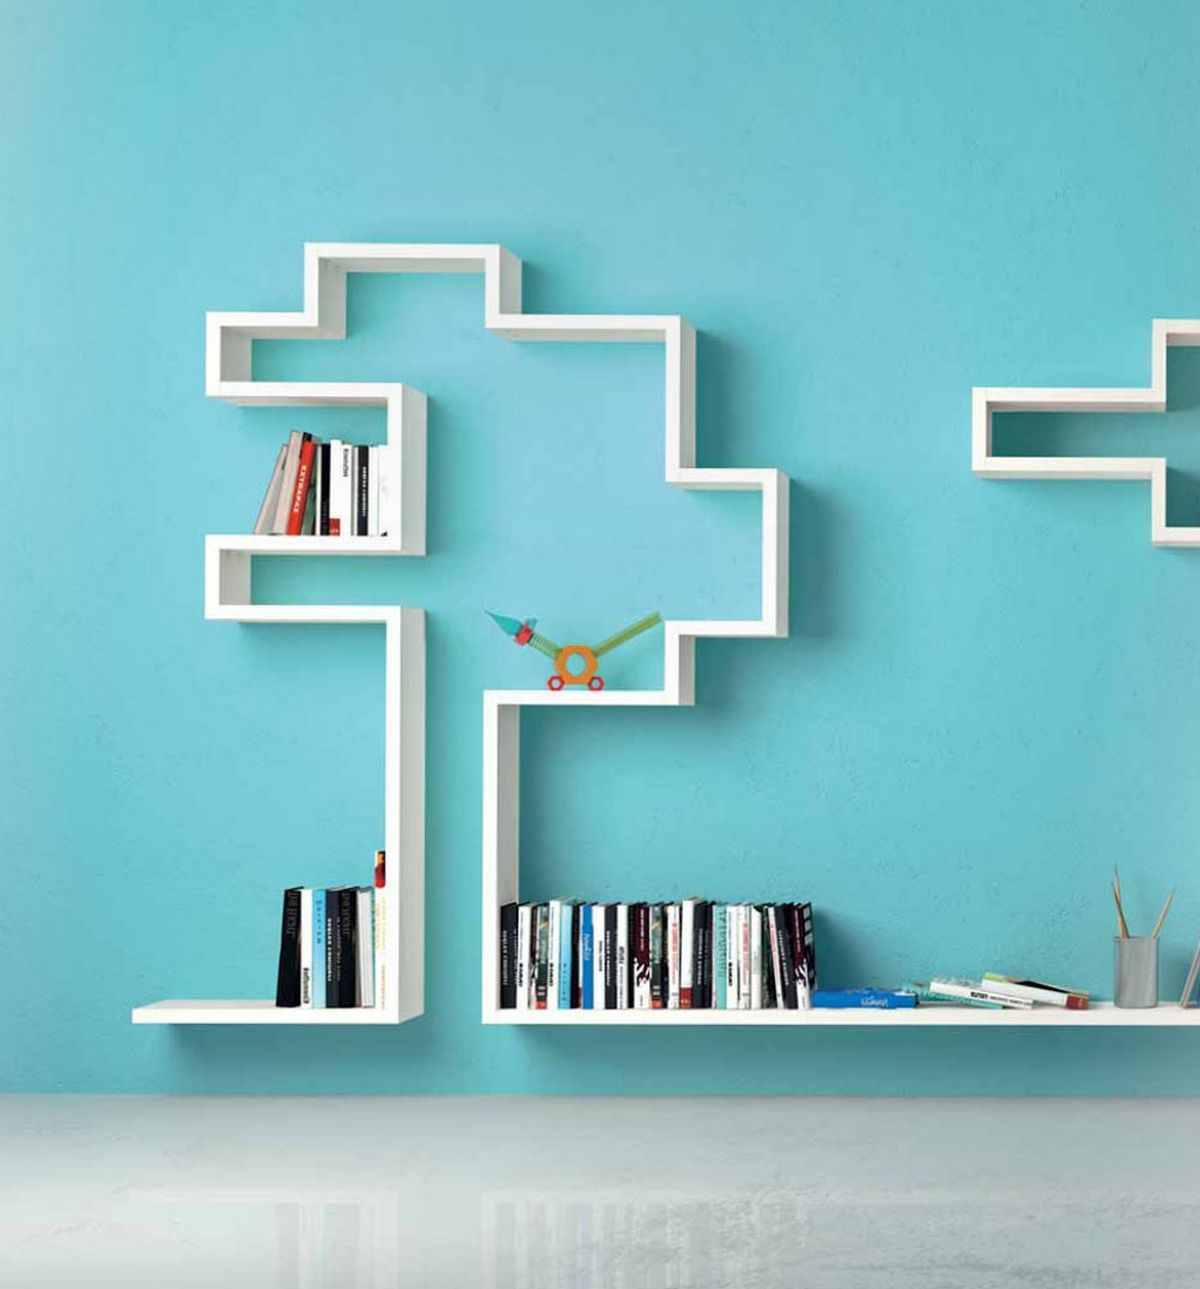 Modular Wall Shelving Lago Linea Modular Wall Shelving Innovative Design  Interior